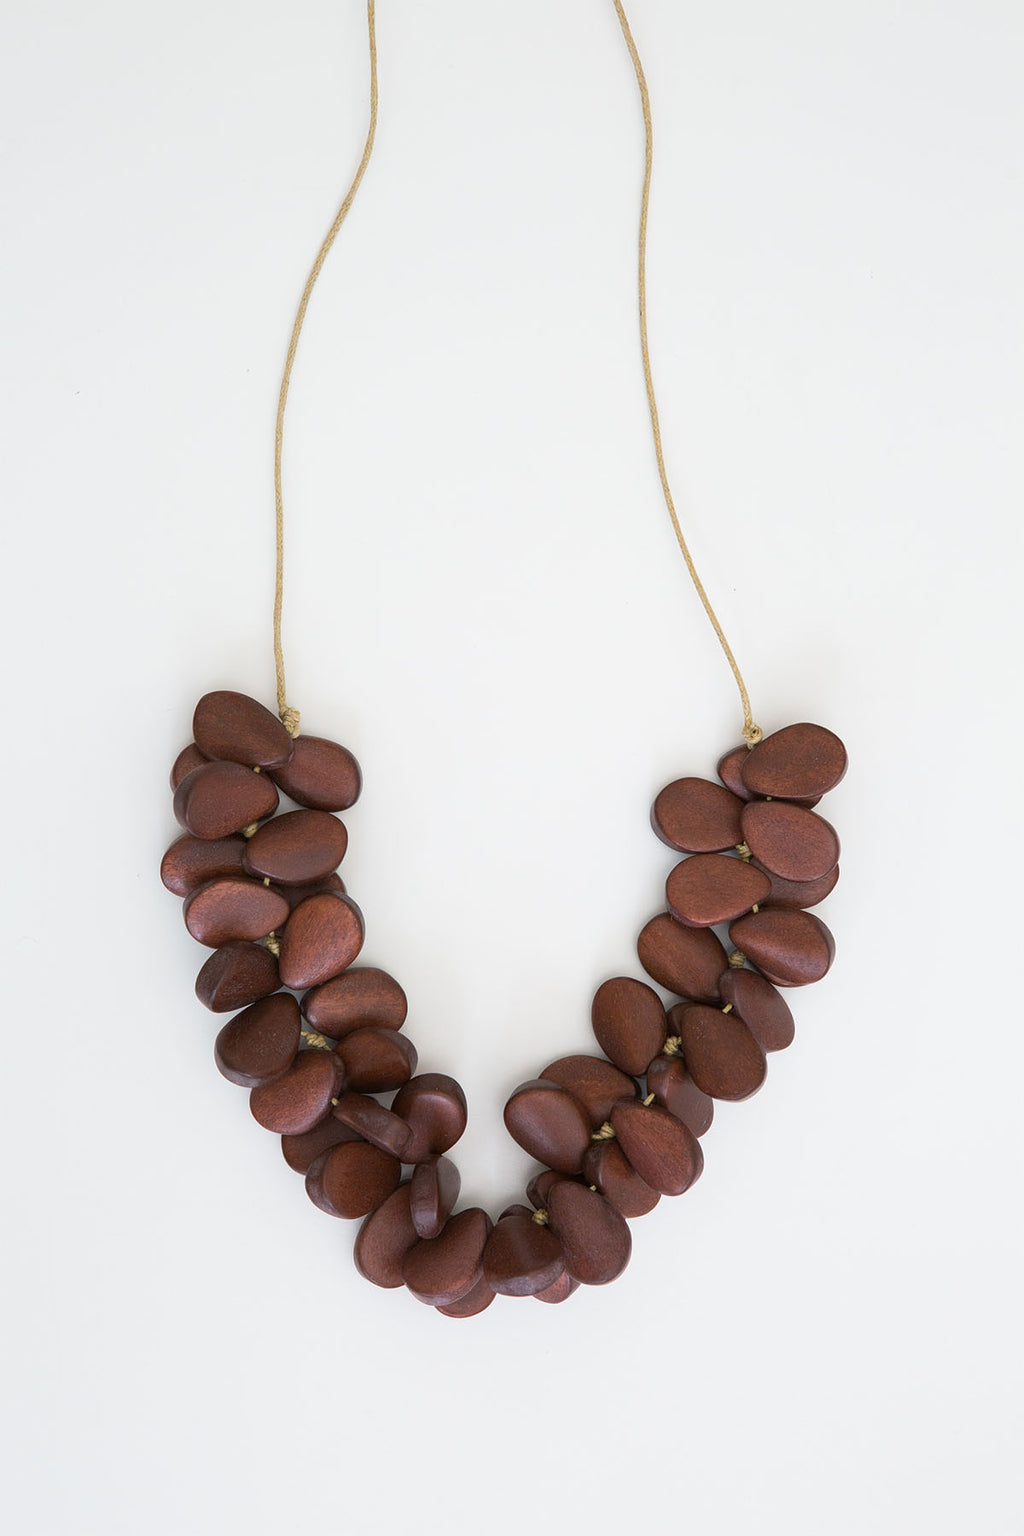 Mangrove Necklace - Clay - The Bohemian Corner